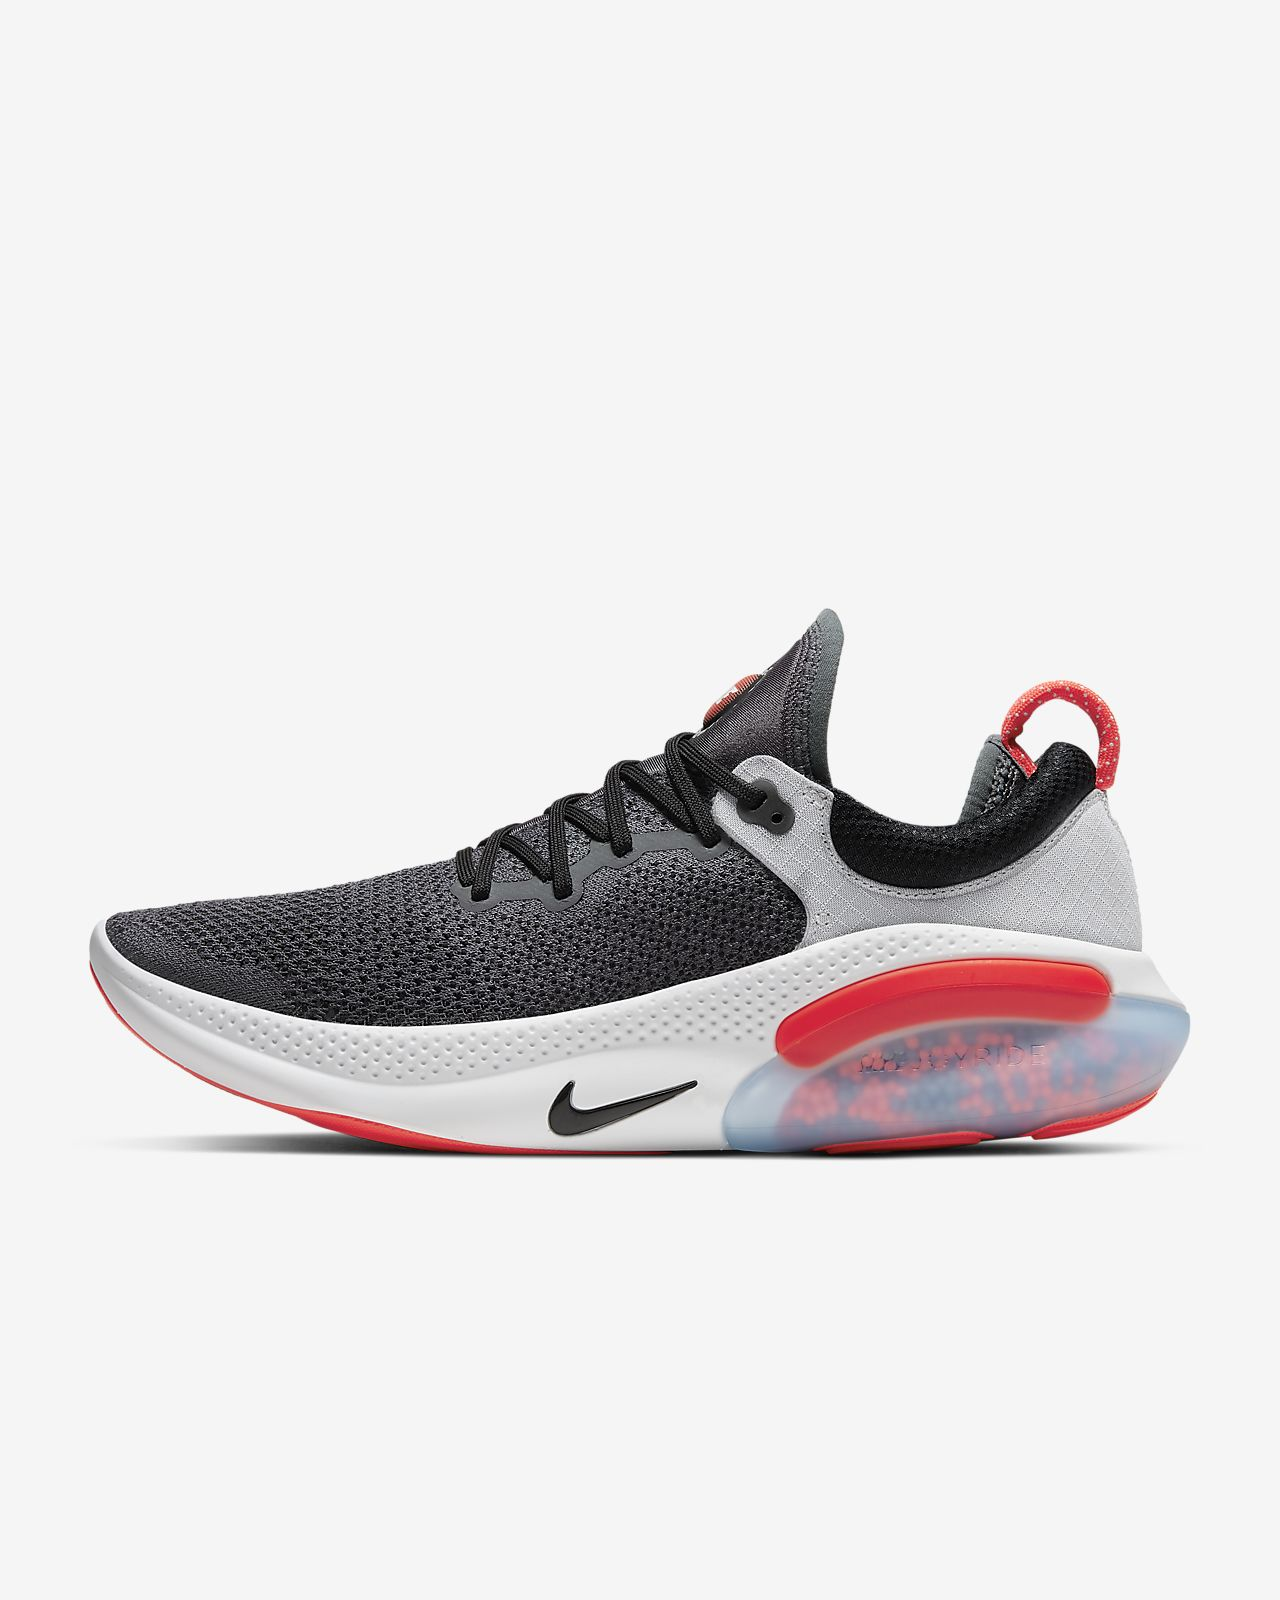 purchase cheap wholesale outlet best price Chaussure de running Nike Joyride Run Flyknit pour Homme. Nike CH